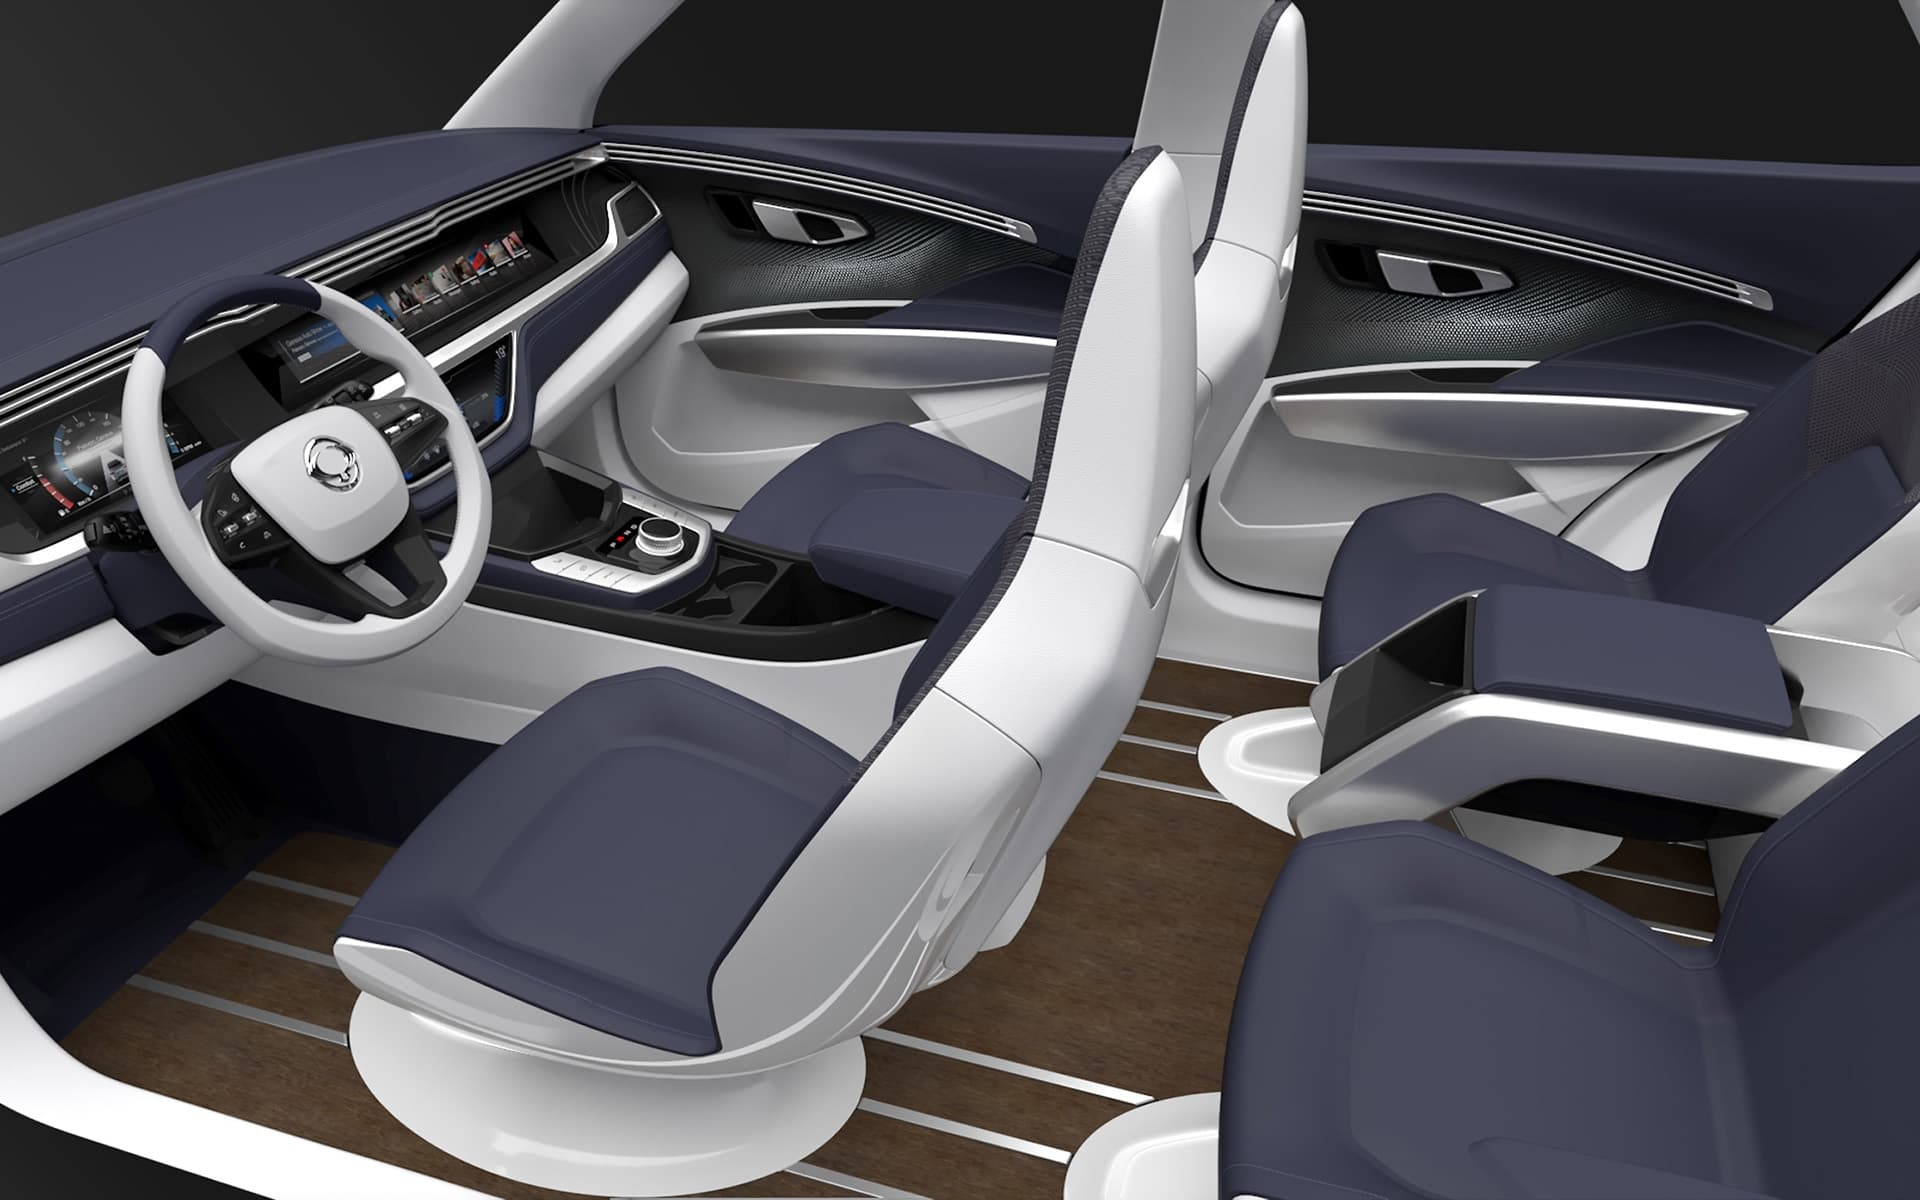 2016 SsangYong SIV 2 Concept Interior image new 2016